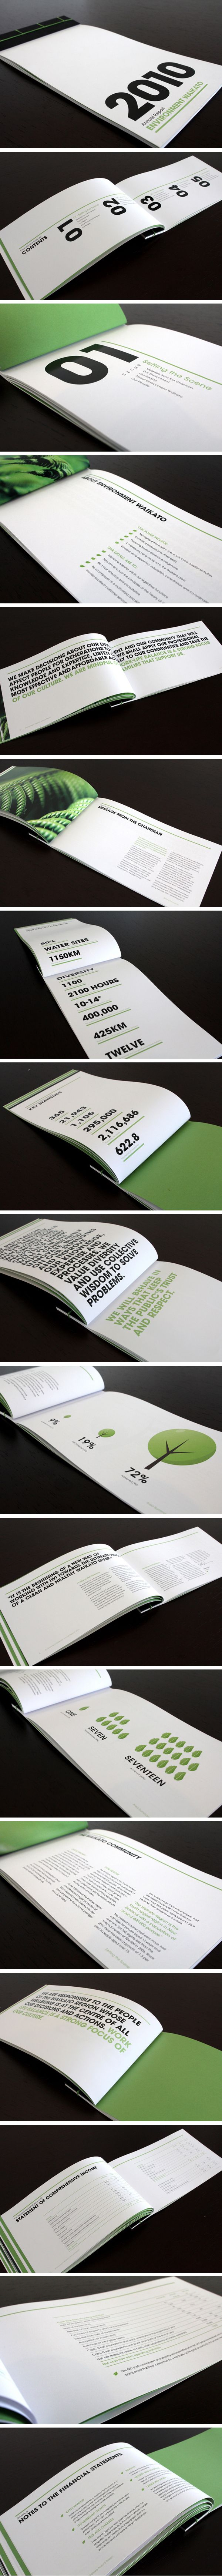 raewyn brandon | environment waikato annual report...love the layout and graphics. bold, elegant simplicity!